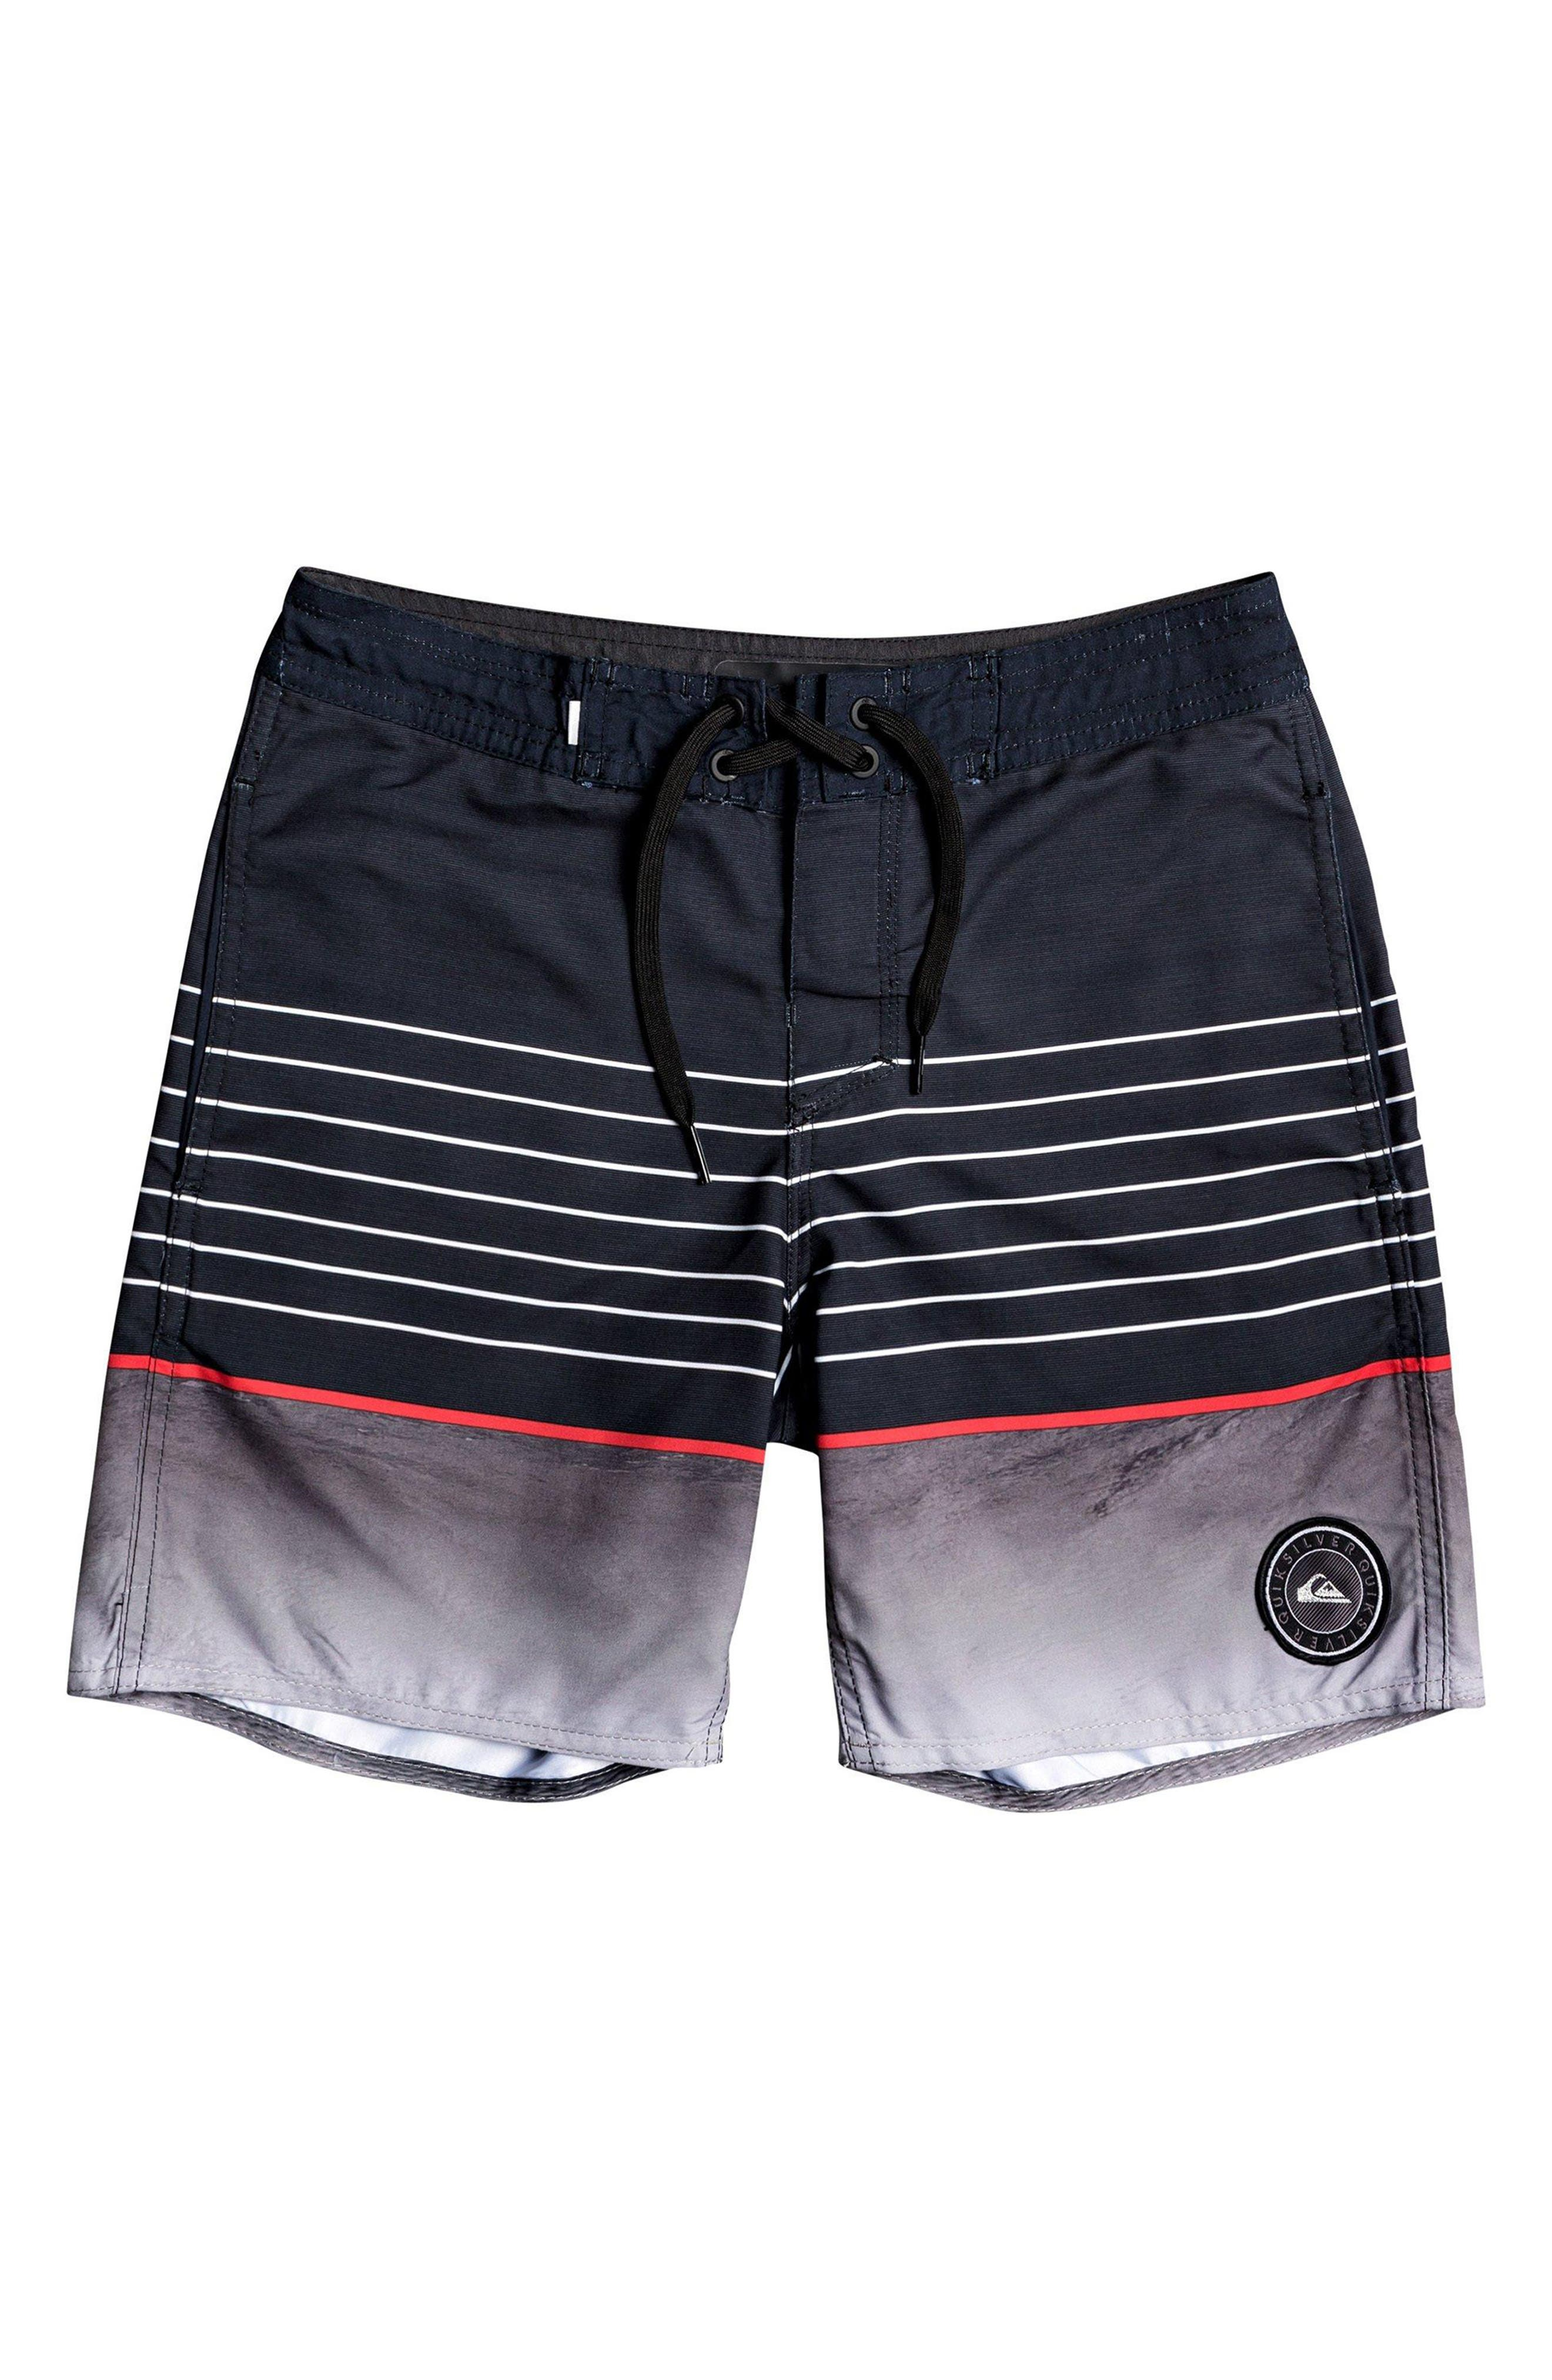 Boys Quiksilver Swell Vision Board Shorts Size 26  Black